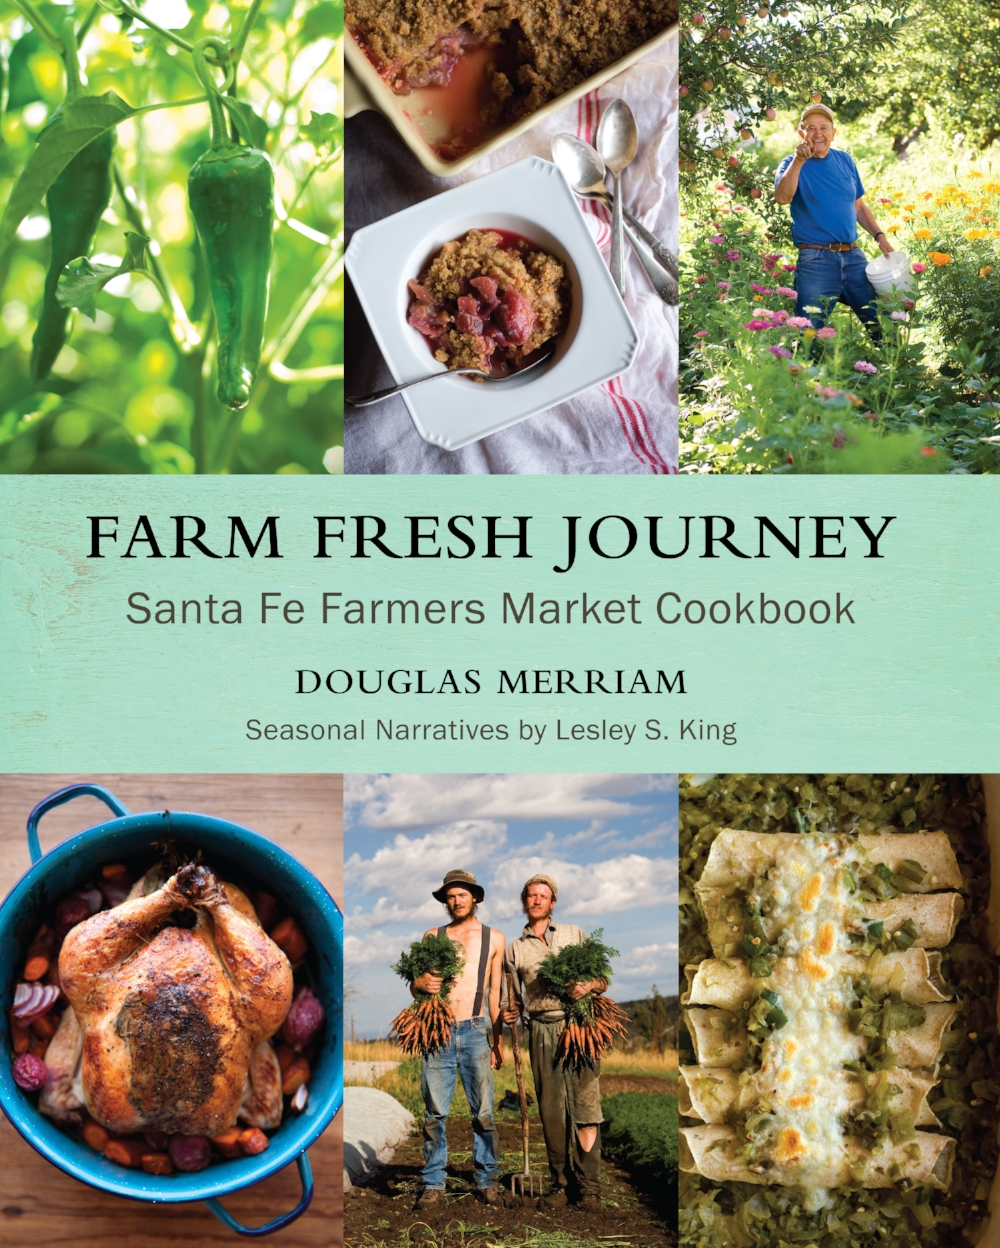 Farm fresh journey it doesnt matter where you live you can cook all of the recipes in this book the seasonal recipes are easy and rely on the flavors of fresh food forumfinder Gallery